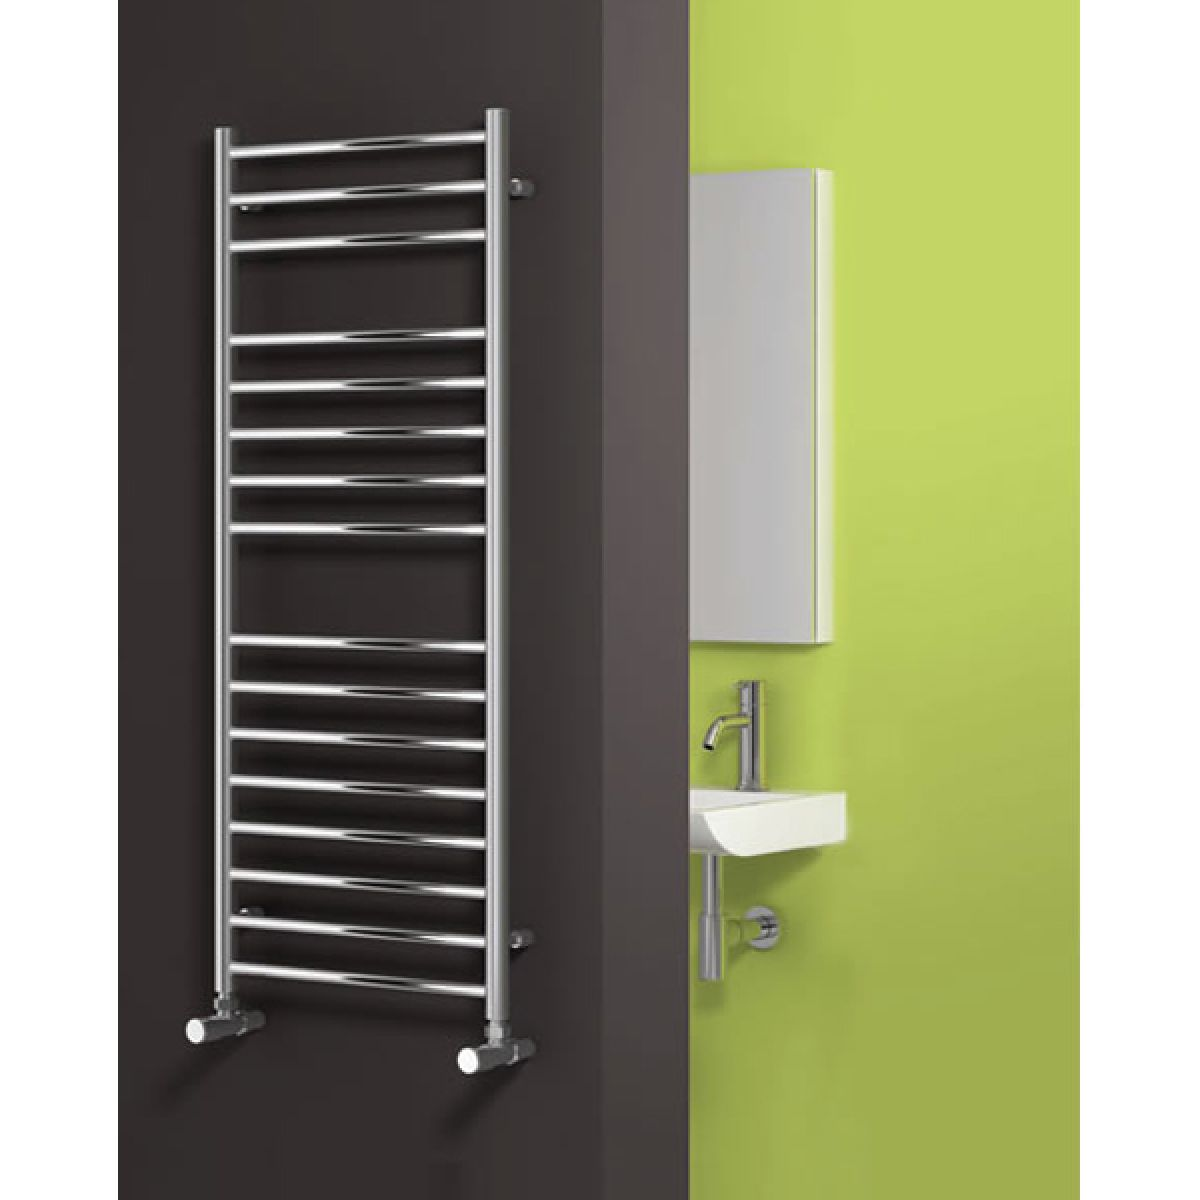 Reina Luna Polished Stainless Steel Flat Electric Towel rail 720 x 500mm